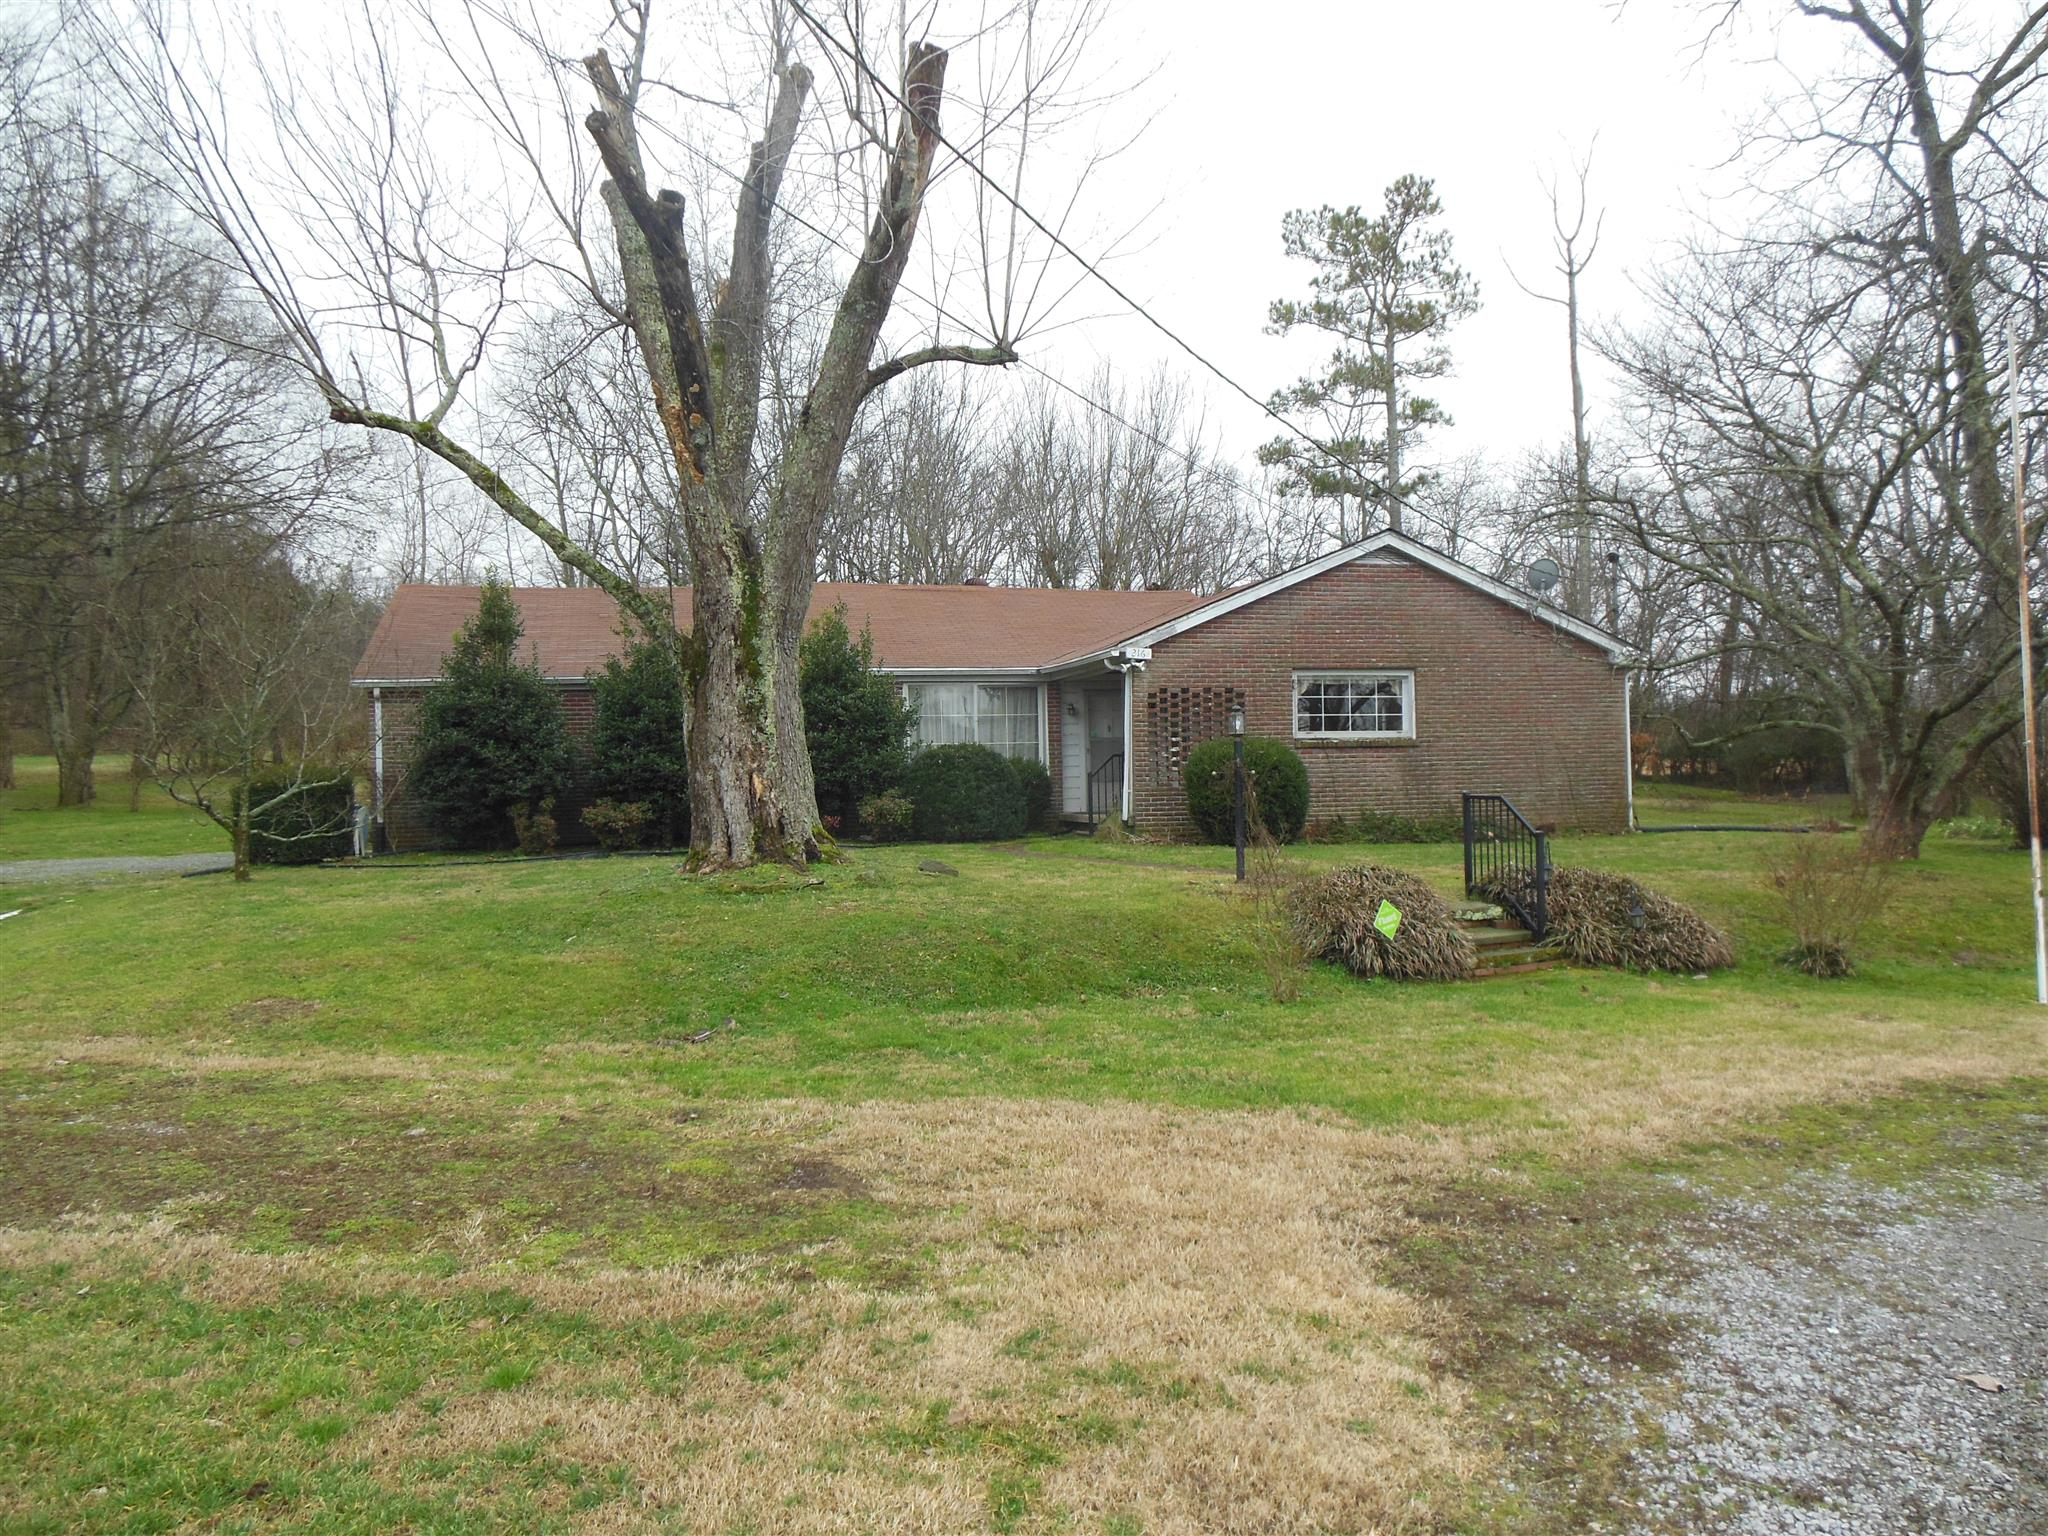 216 Hatchett Hollow Rd Cornersville, TN 37047